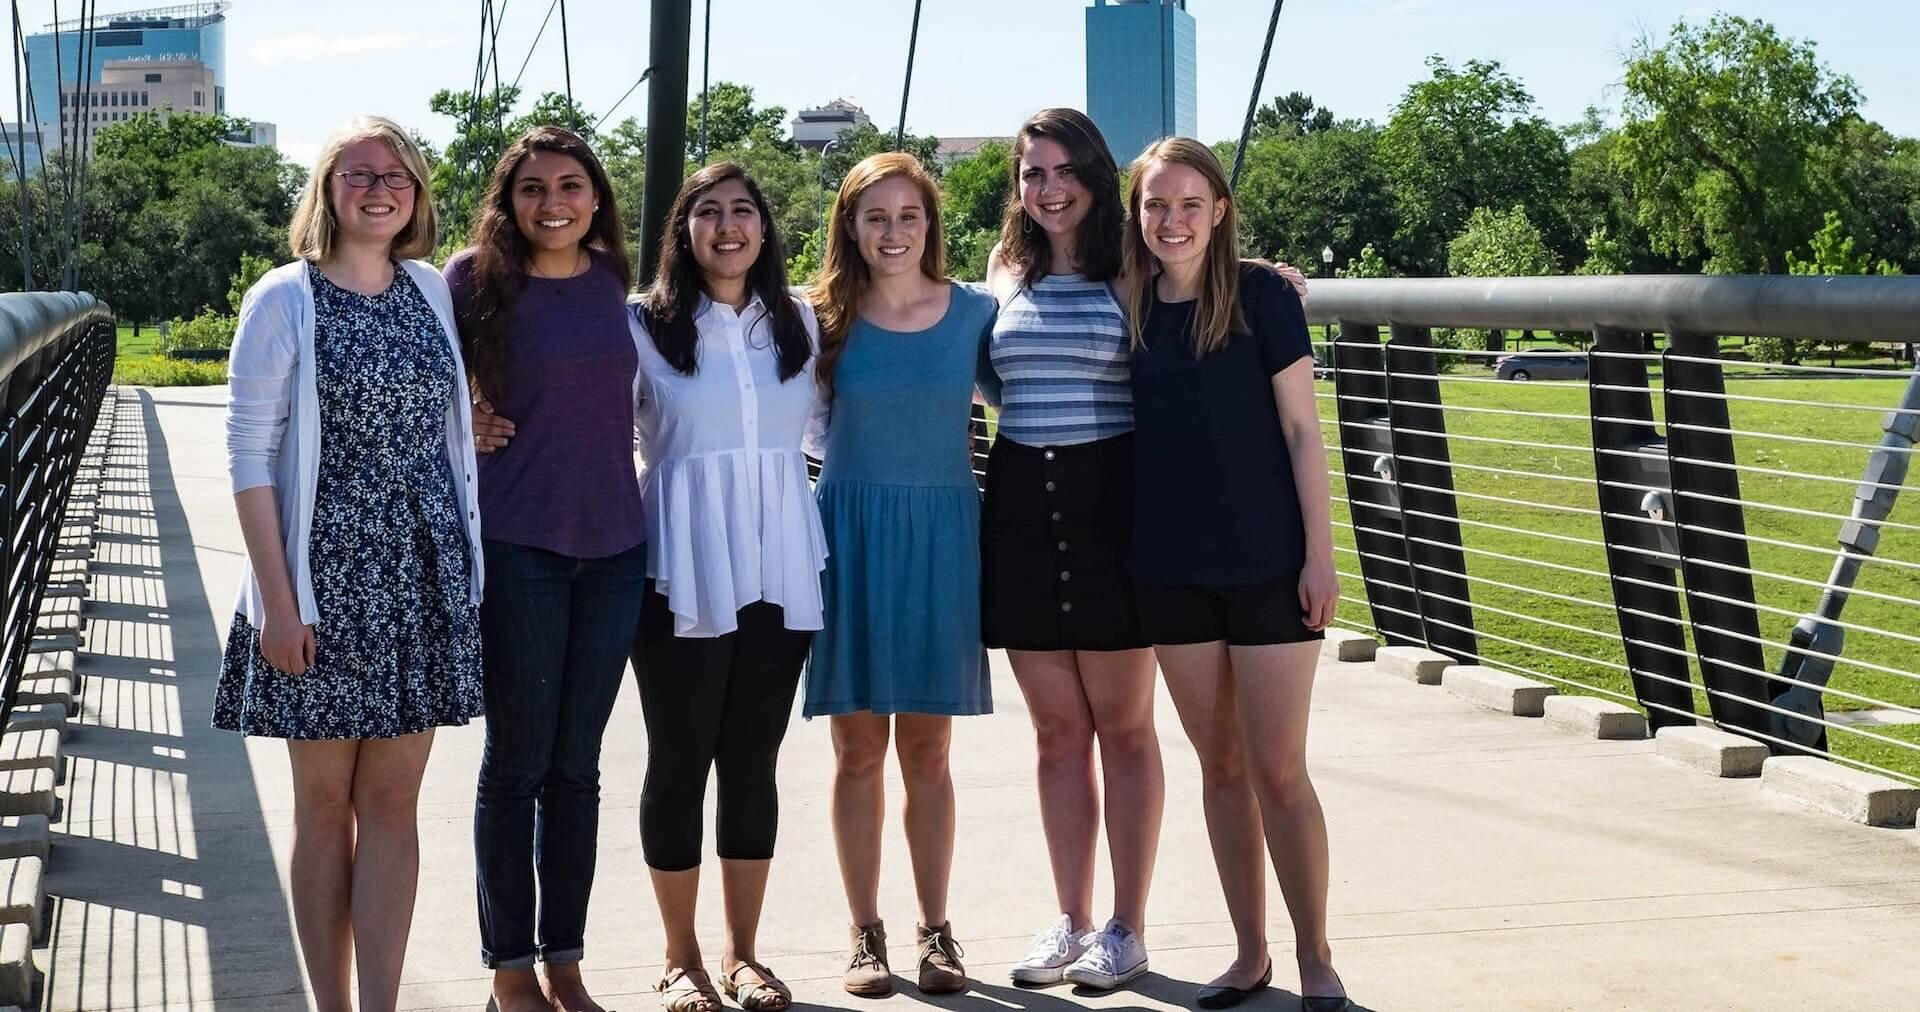 Rice University senior engineering students have developed enhancements to the ongoing Project Brays to alleviate flooding in Houston. Gathered on a footbridge over Brays Bayou are, from left, Kasia Nikiel, Avi Gori, Jinal Mehta, Julianne Crawford, Marie Gleichauf and Sam Greivell. (Credit: Jeff Fitlow)